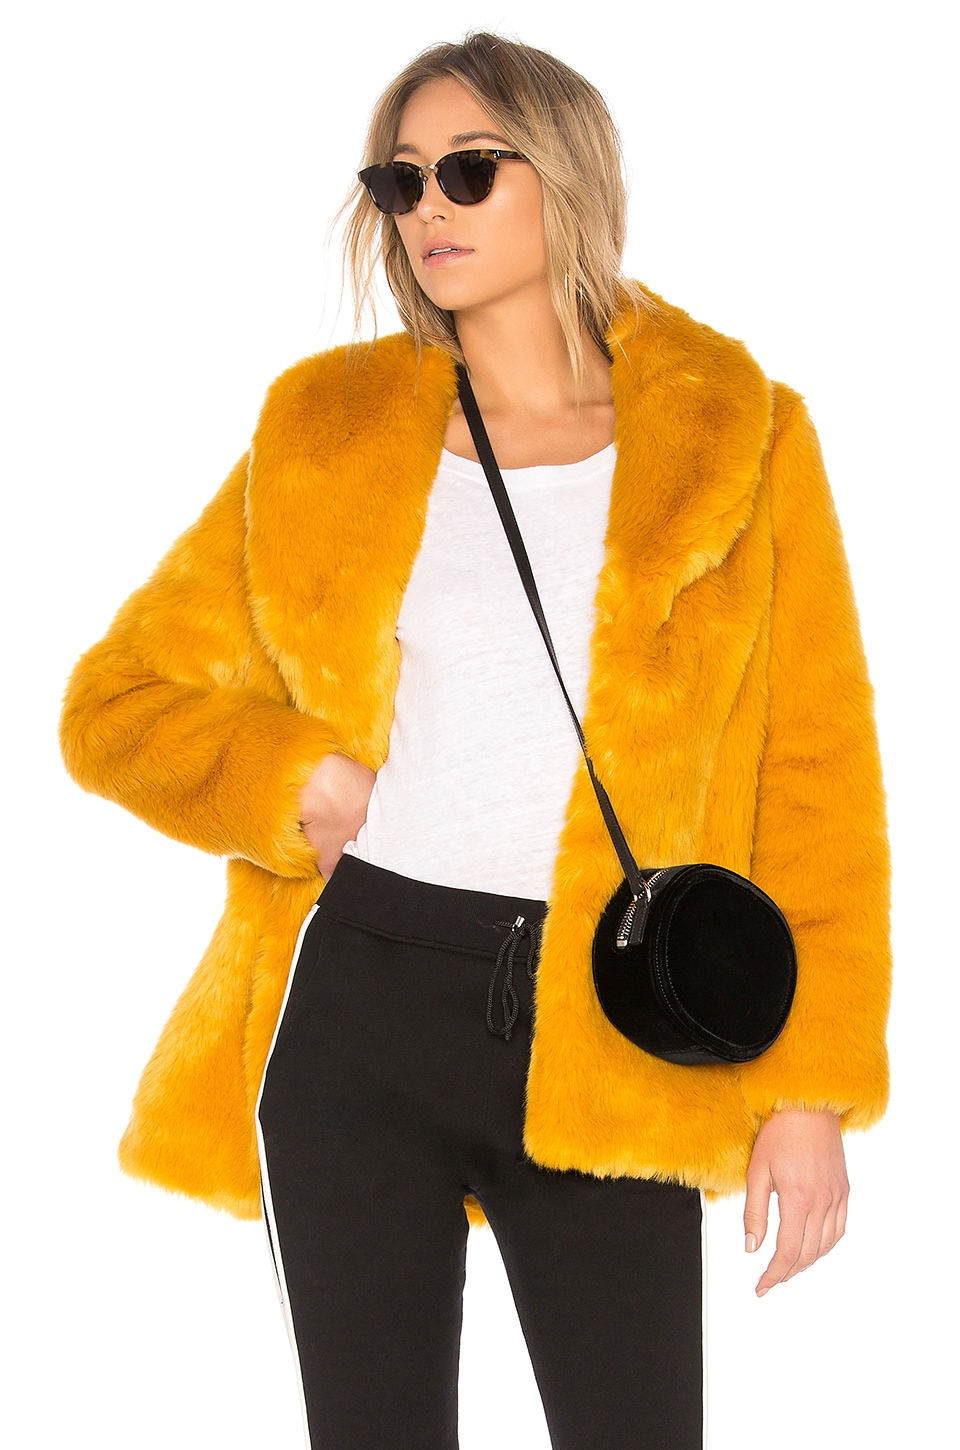 EAVES Gold Rush Faux Fur Coat in Marigold